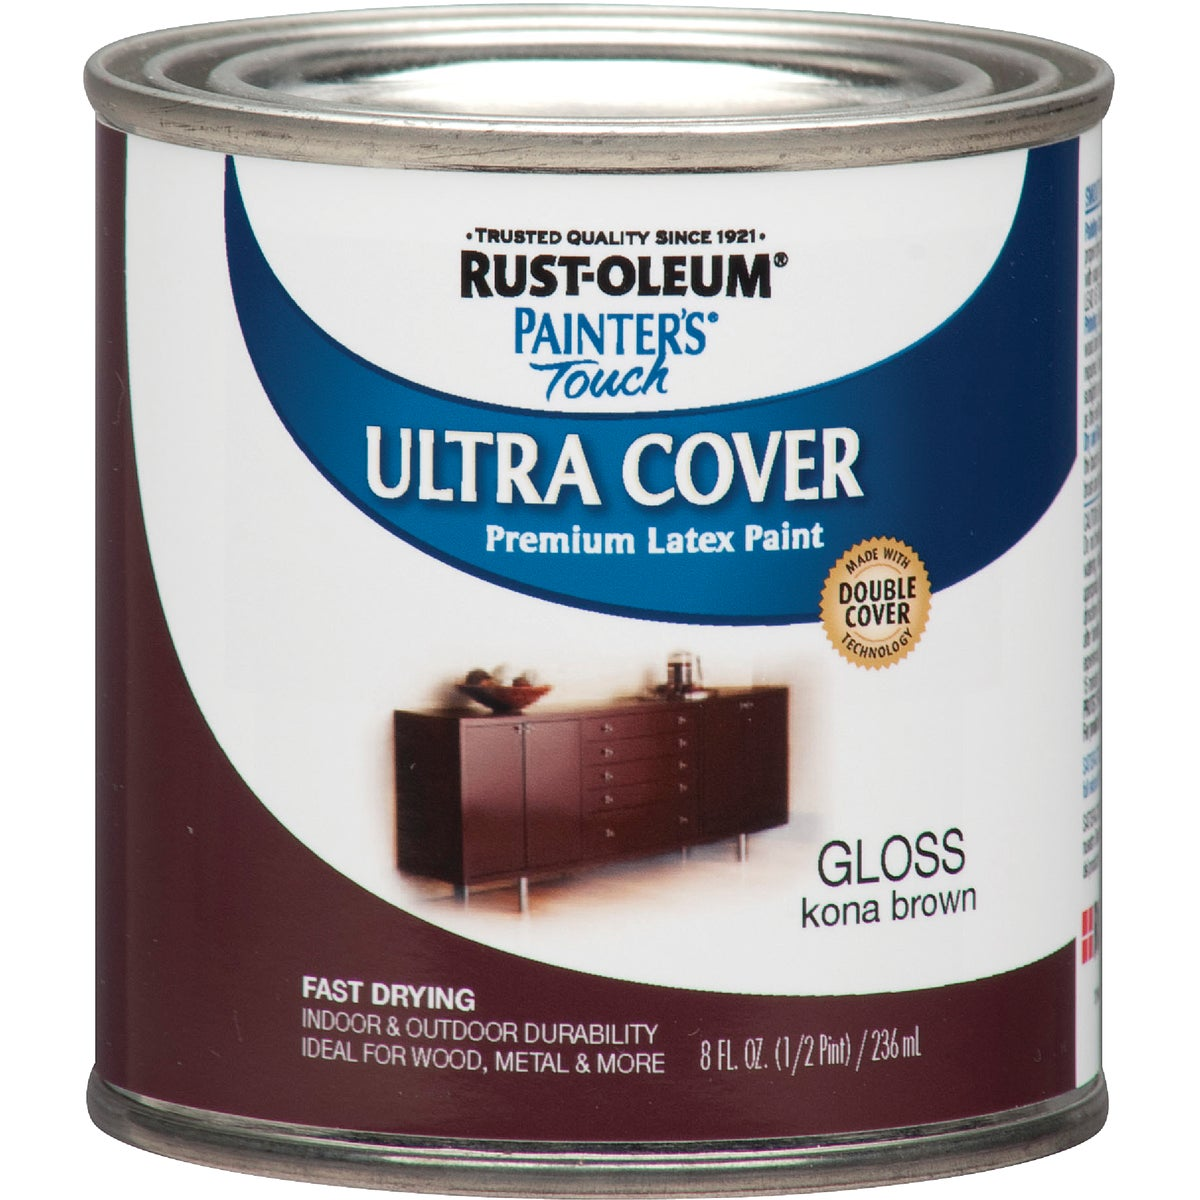 KONA BROWN LATEX PAINT